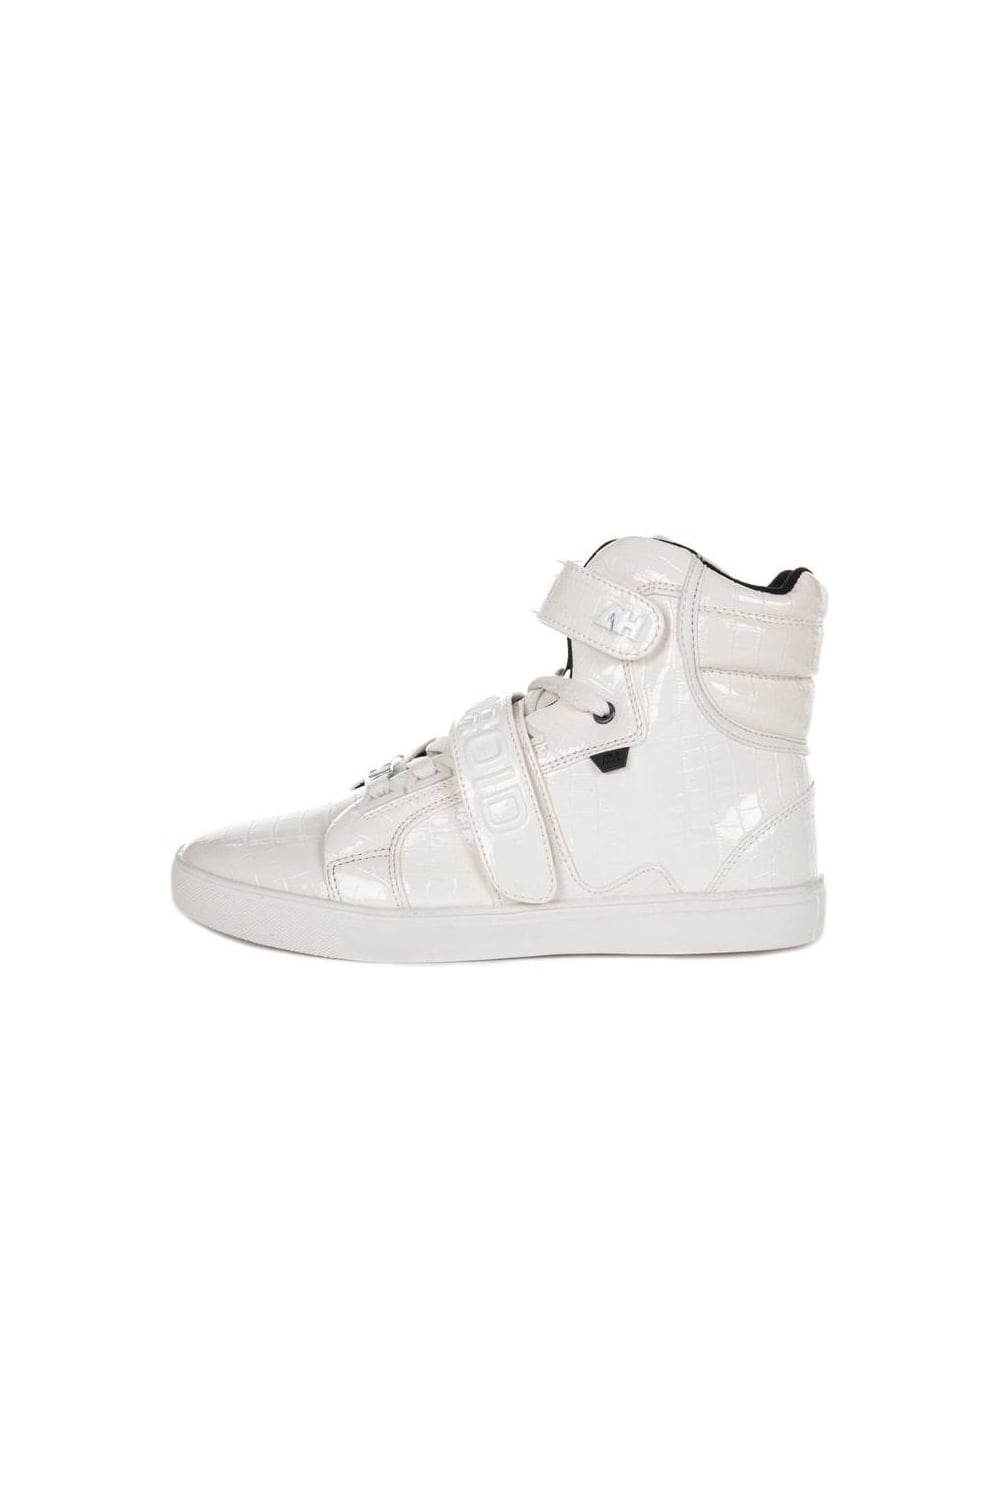 924715af0c56 AH By Android Homme Propulsion Hi Top Trainers White